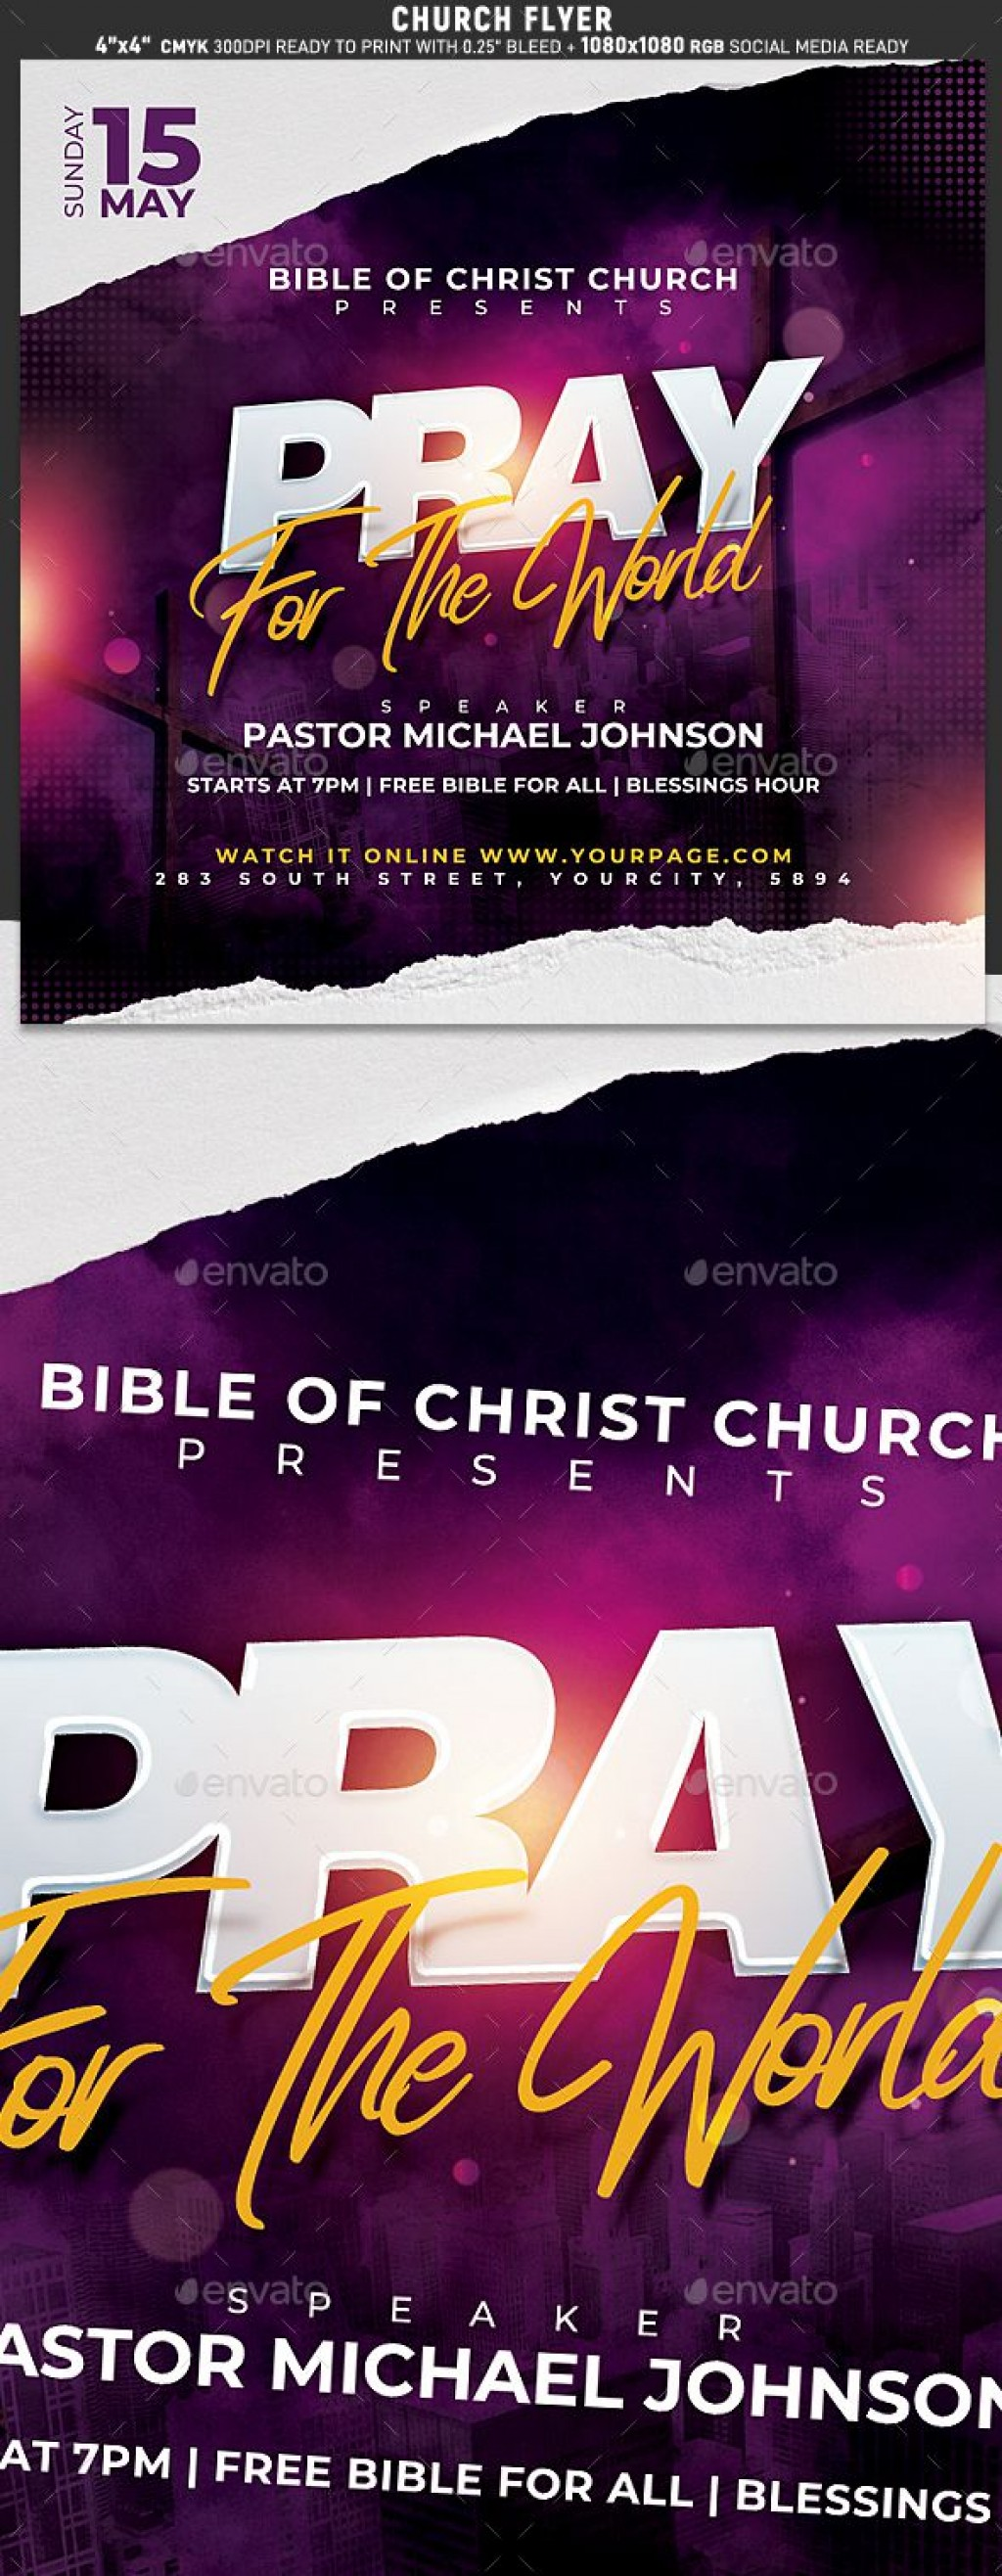 005 Shocking Church Flyer Template Photoshop Free Picture  PsdLarge